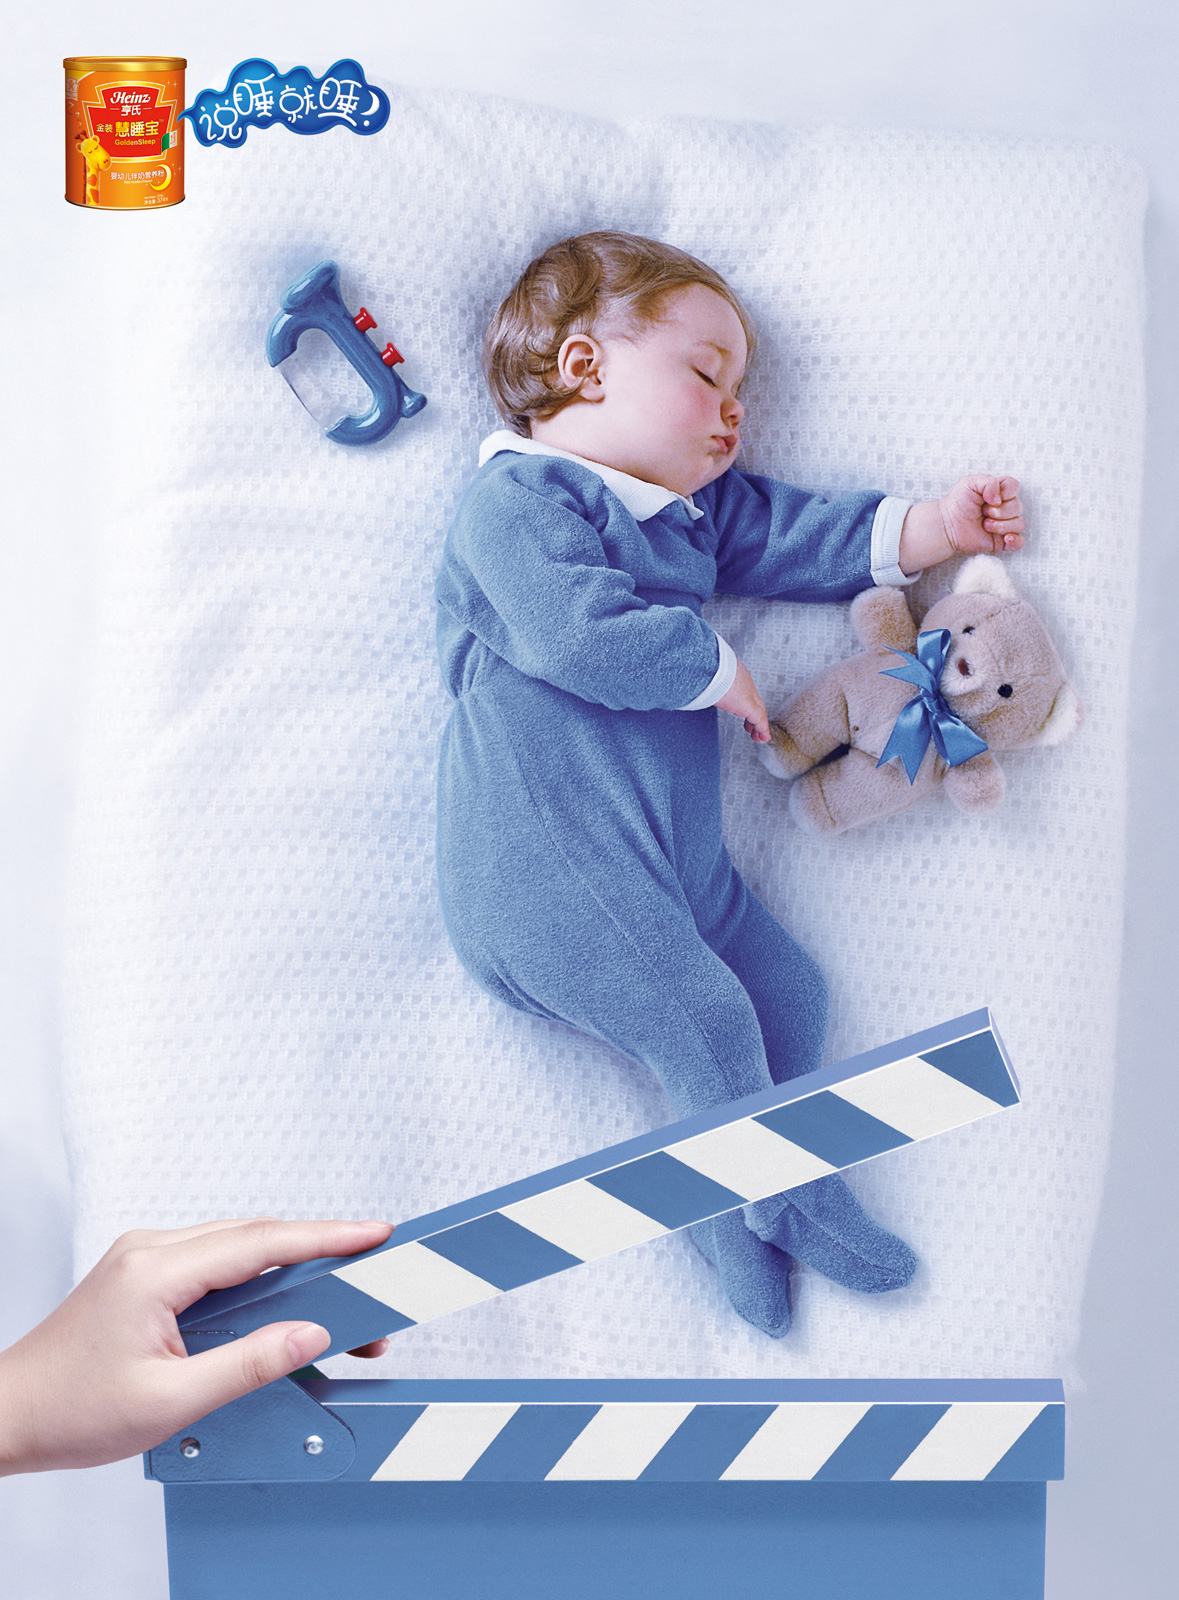 Make your children fall asleep easily as you wish at anytime.